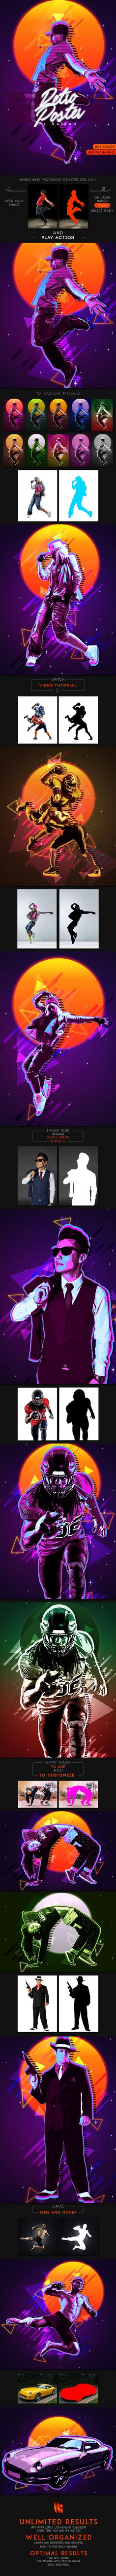 80's Retro Poster Photoshop Action #80's #actions • Download ➝ https://graphicriver.net/item/80s-retro-poster-photoshop-action/21362682?ref=pxcr